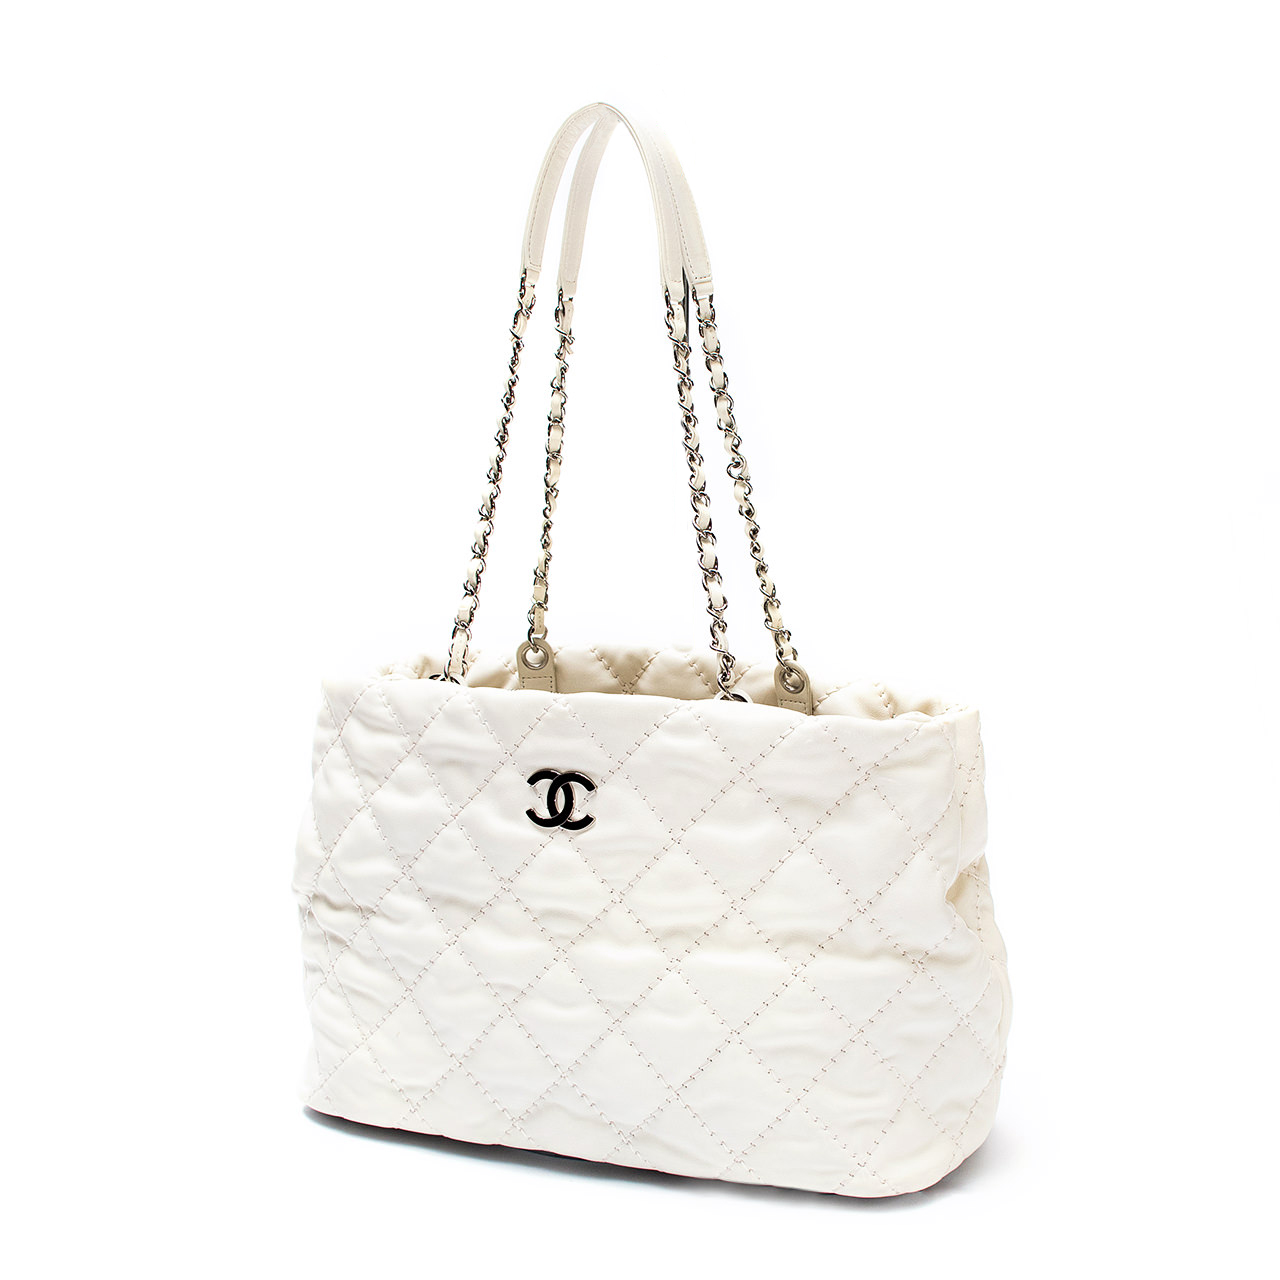 97ce2be3f1a Bolsa Chanel Stitch-It